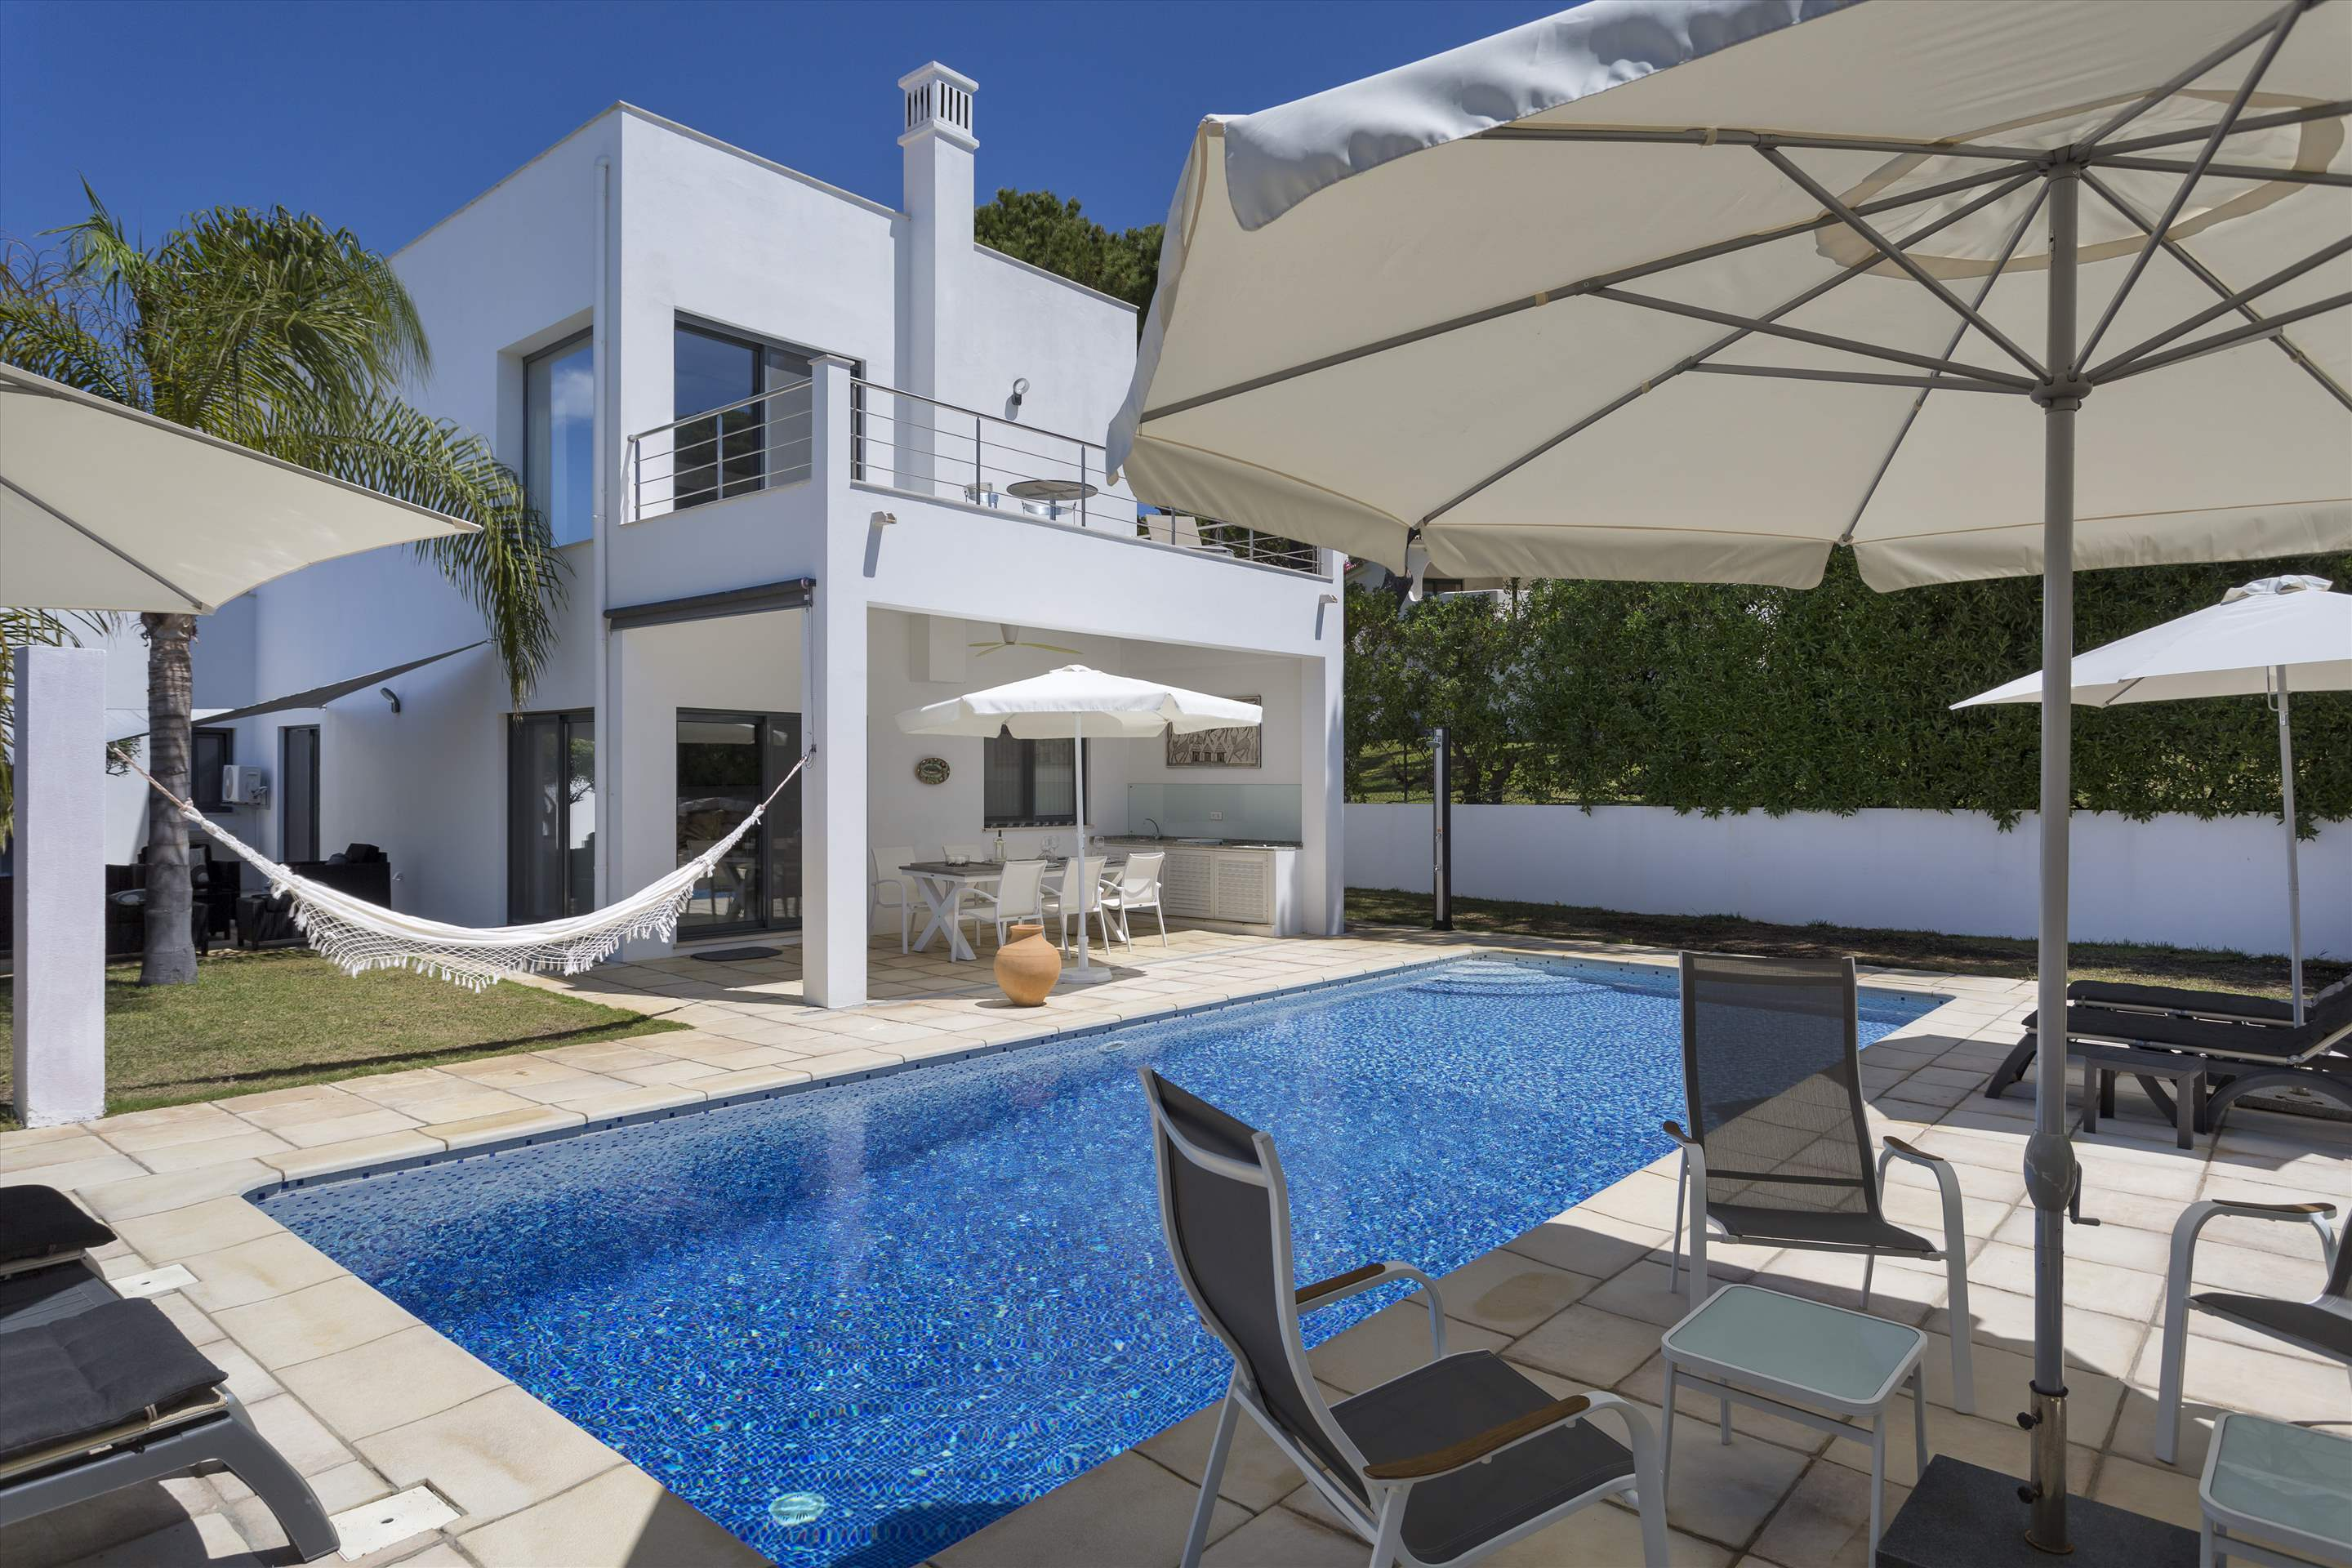 Villa Selena, 2 bedroom villa in Quinta do Lago, Algarve Photo #7